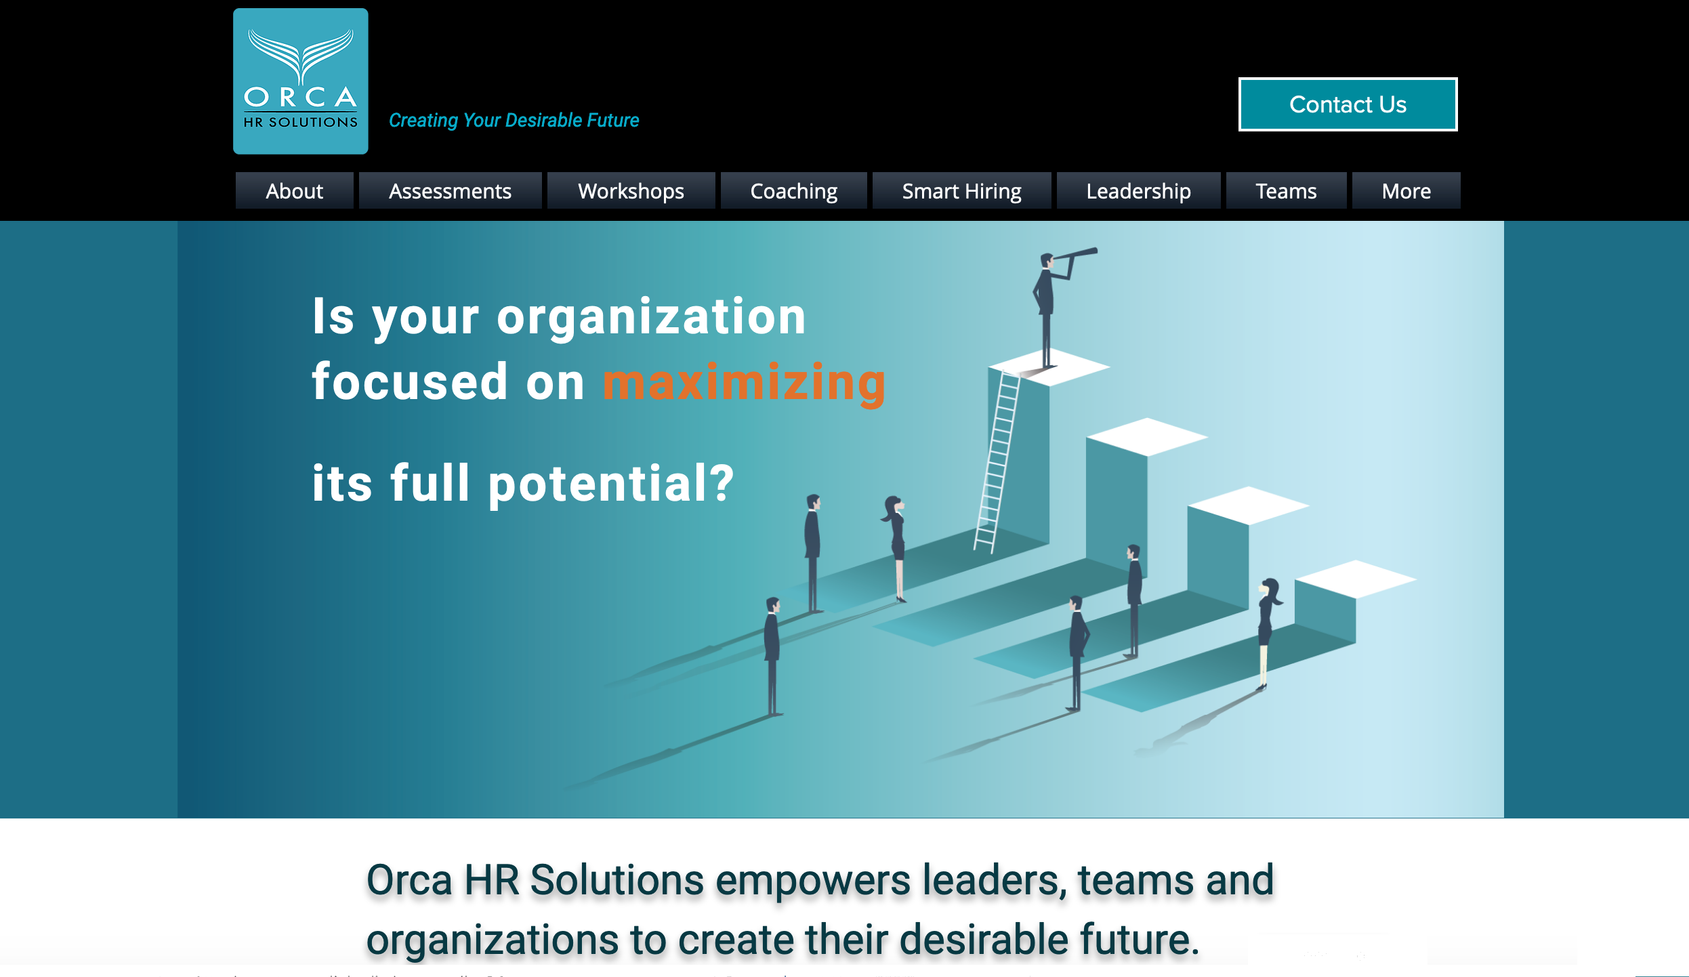 orca landing page grab.png